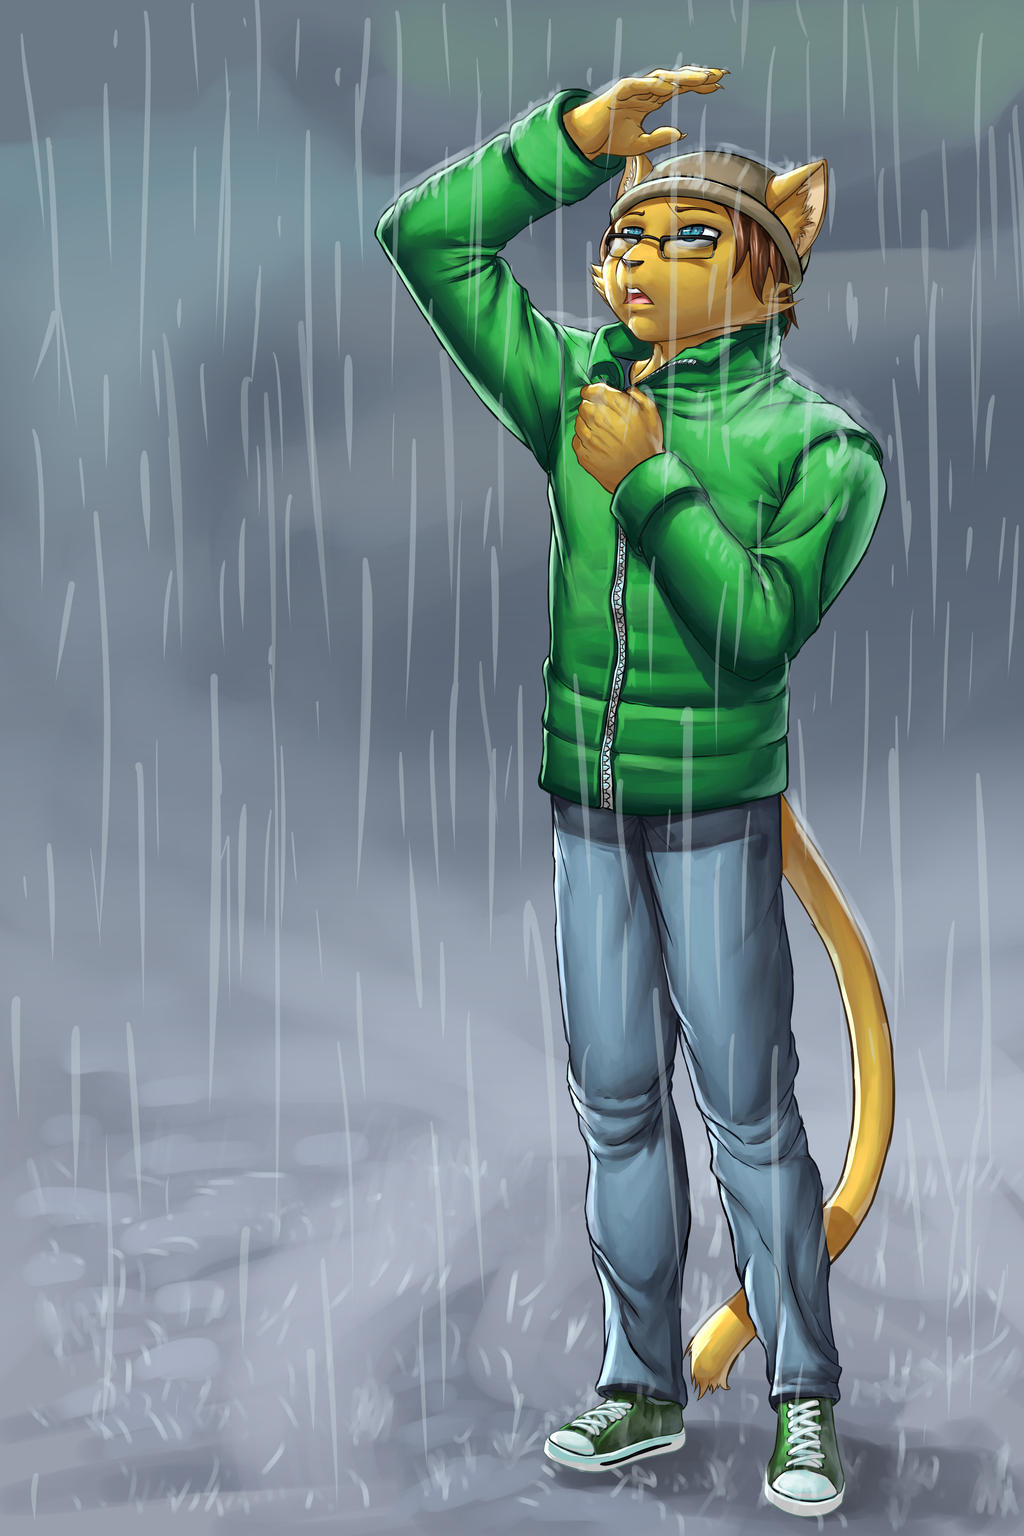 ... Cat lad in the rain -Comission- by faogwolf